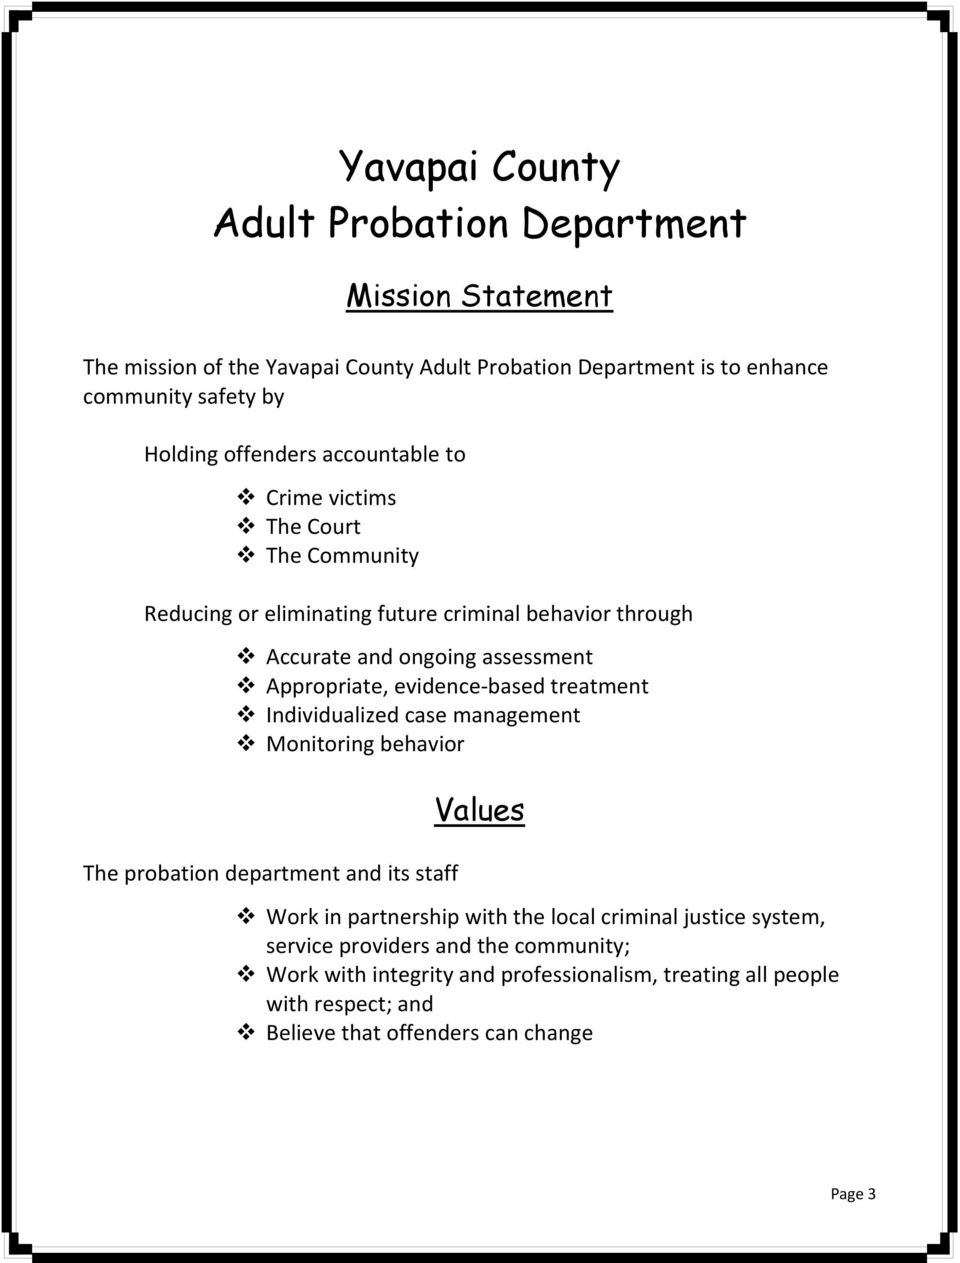 evidence based treatment Individualized case management Monitoring behavior The probation department and its staff Values Work in partnership with the local criminal